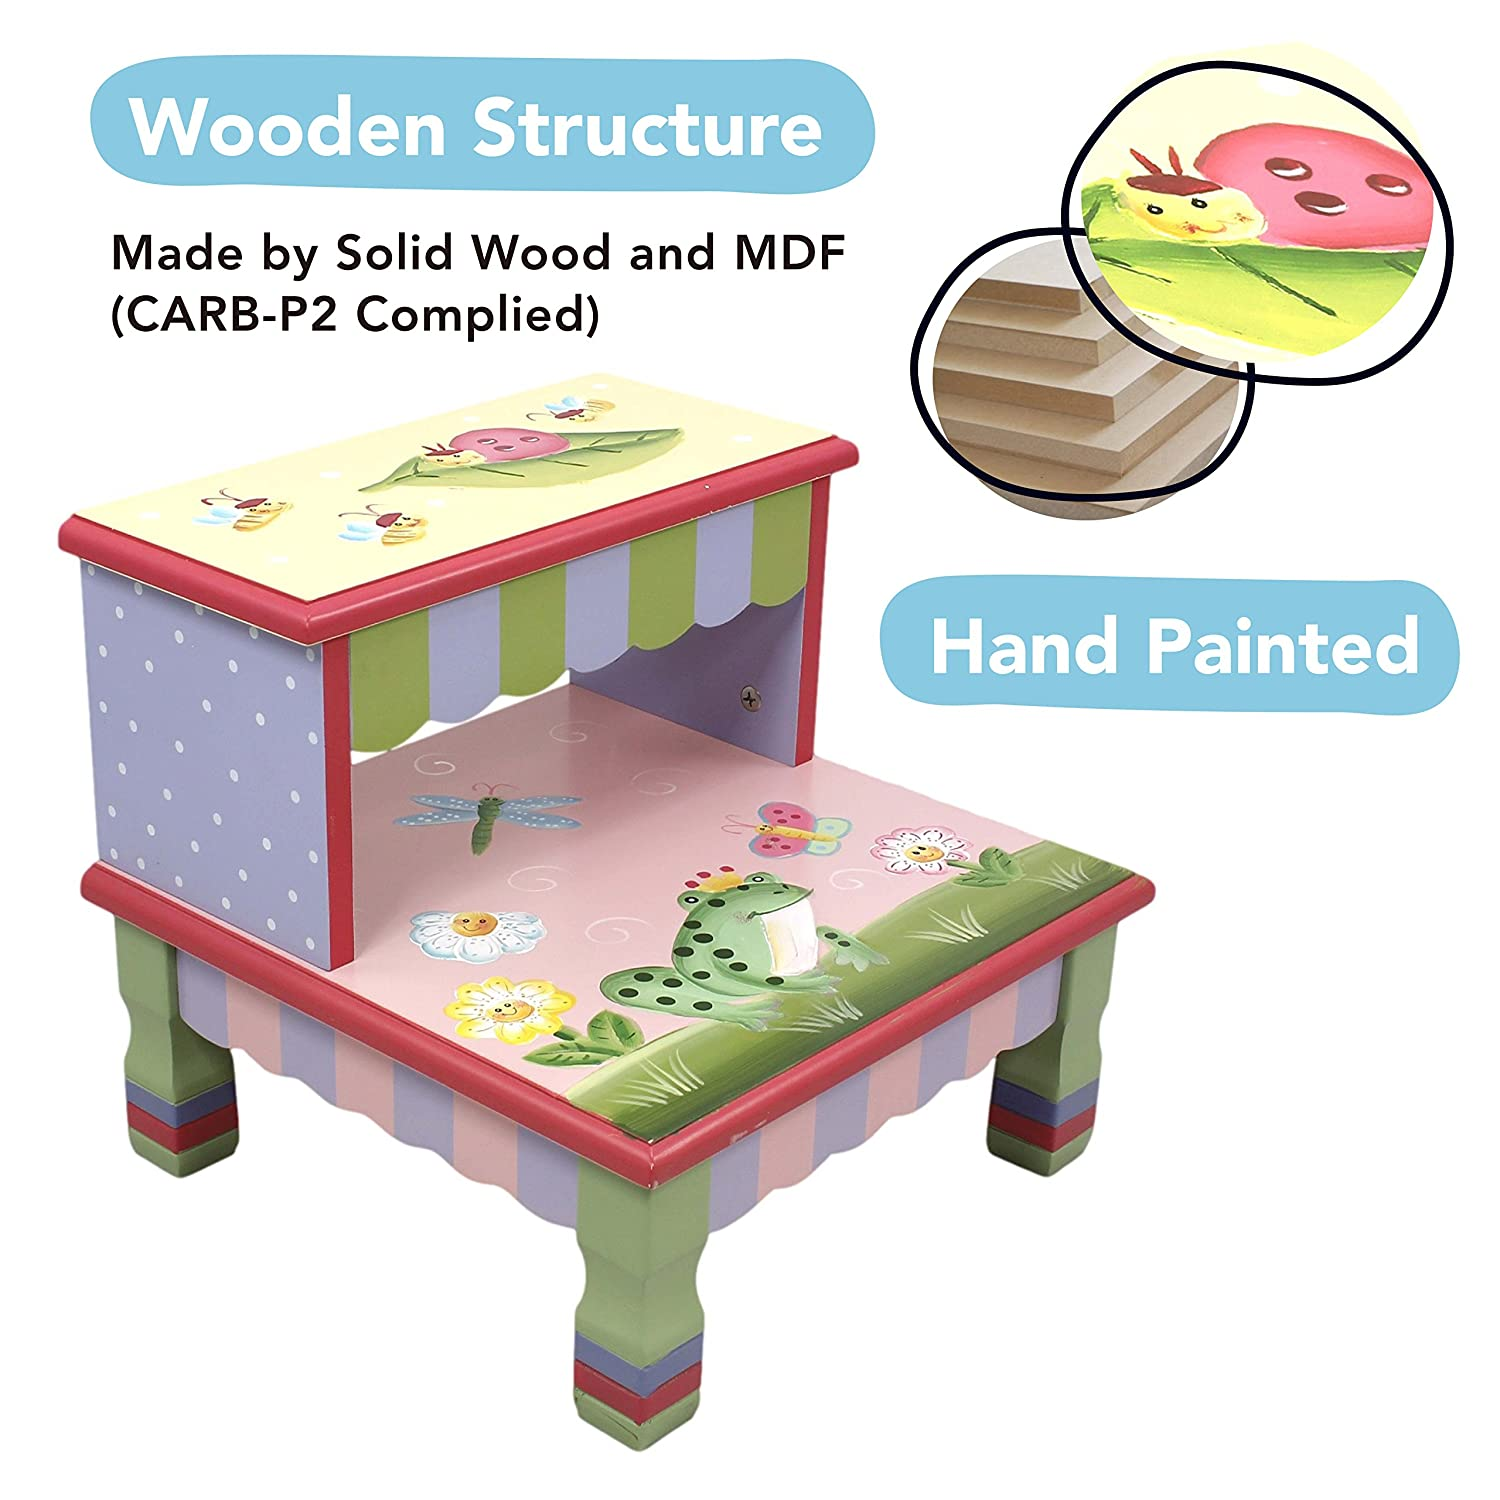 Hand Crafted /& Hand Painted Details Outer Space themed Kids Wooden Step Up Stool with Storage Fantasy Fields Child Friendly Water-based Paint